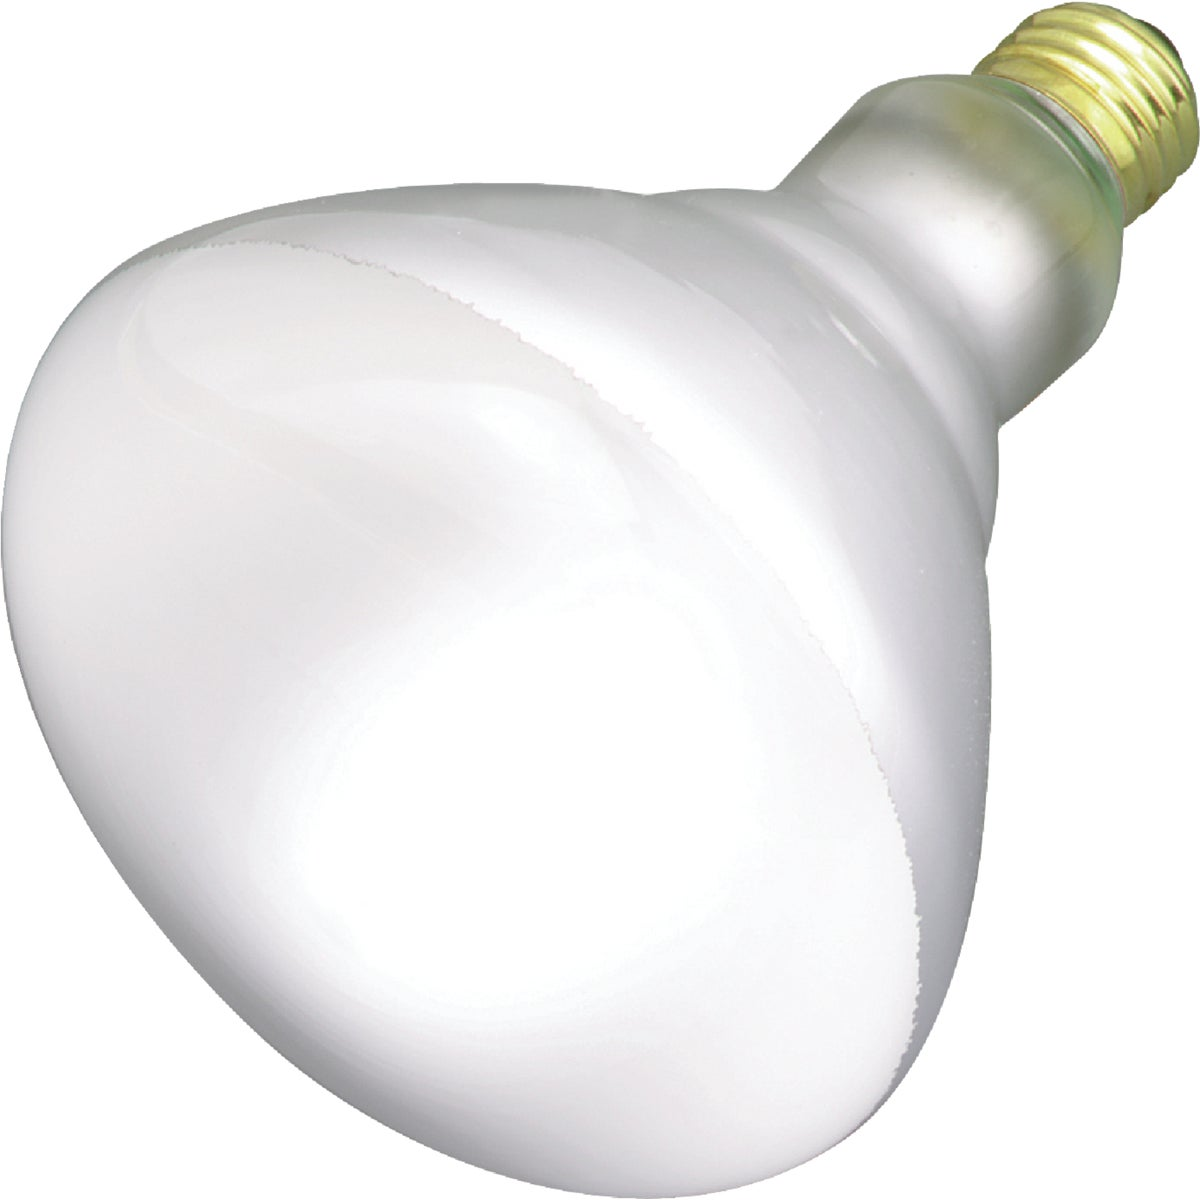 65W R40 REVEAL BULB - 87904 65R40/FL/RVL by G E Lighting